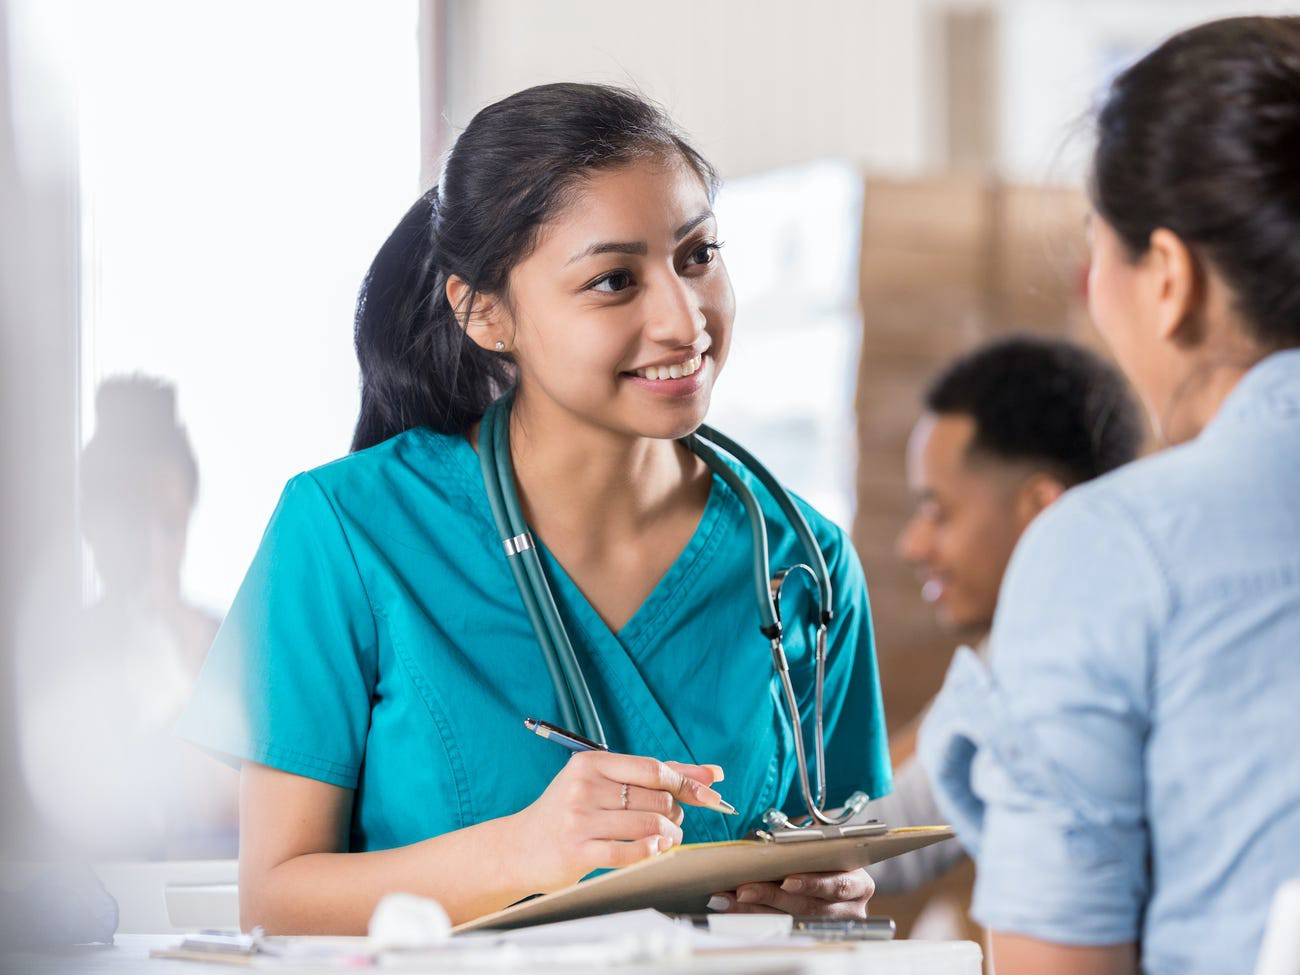 A nurse talking to someone while holding a pen.